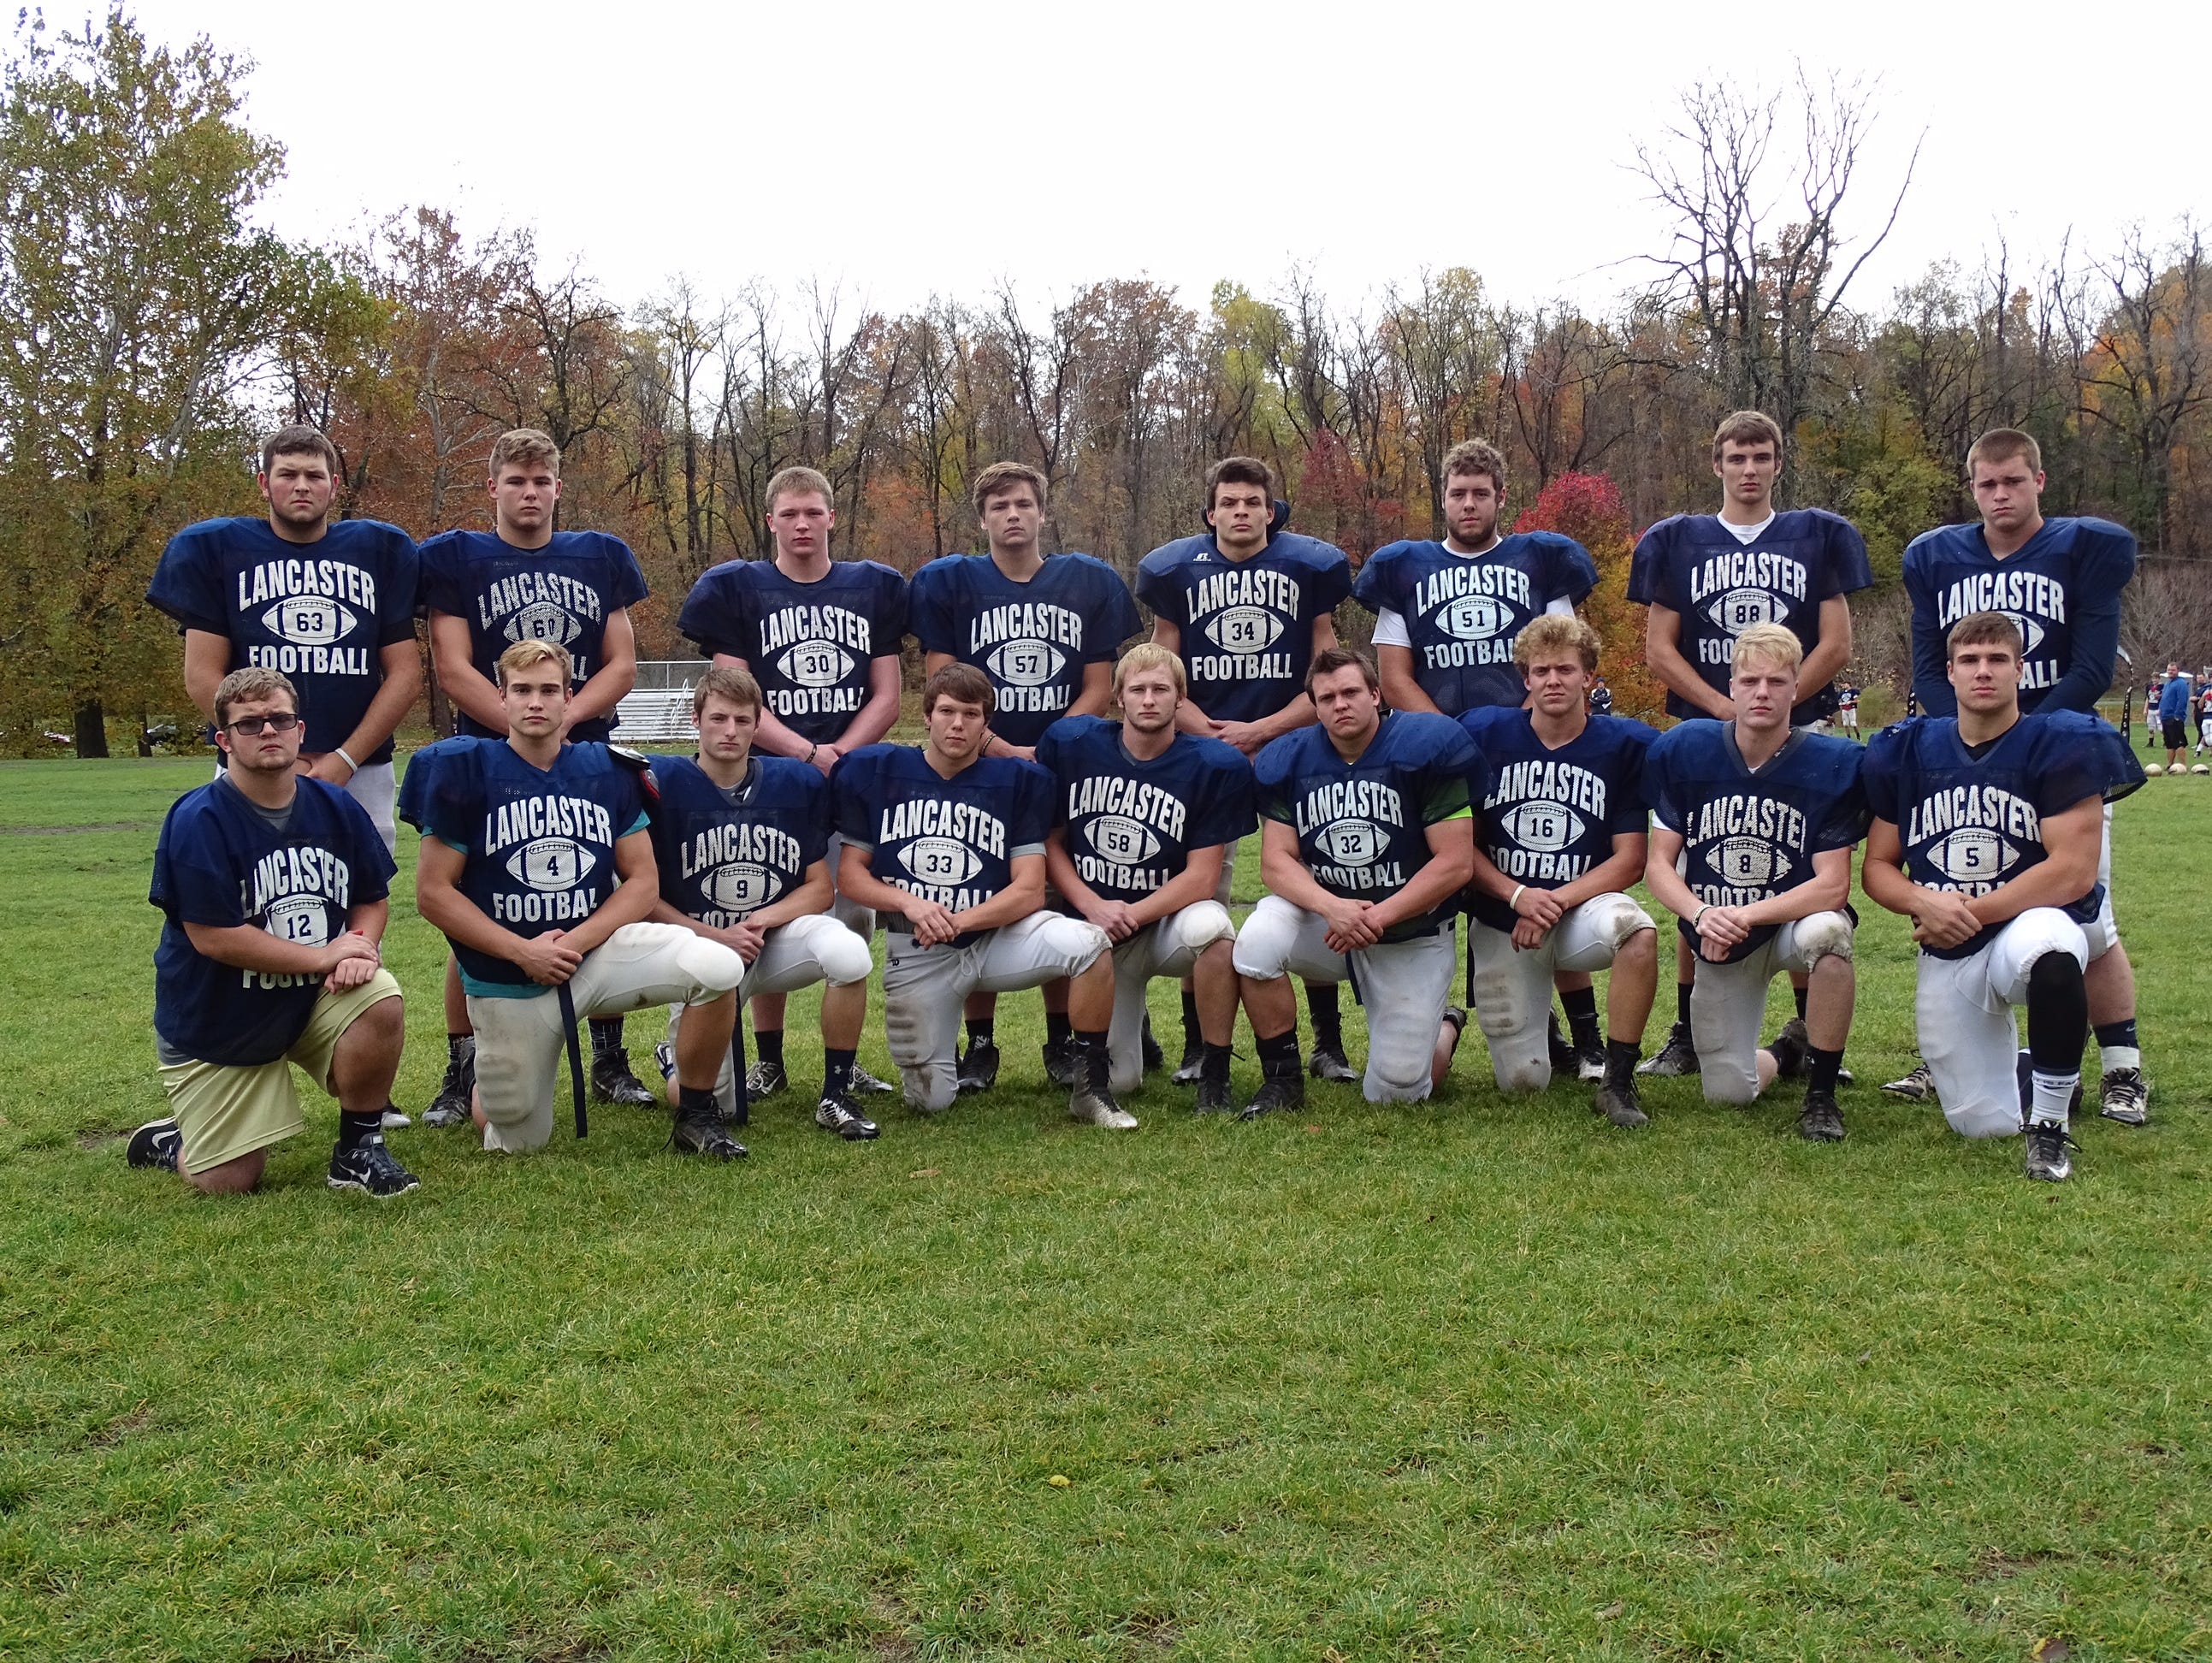 On Friday against Newark, Lancaster will host senior night. Senior players include: front row, left to right; Director of Football Operations Andy Reliford, Drew Smith, Ashton Walker, Tyler Carter, Ryan Roseberry, Ryan Fitchpatrick, Trevor Monk, Ty Spires and Isaac Goss. Second row, L-R: Trevor Worthman, Dillon Denault, Eric Deluse, Evan Highley, Ryan Edwards, Chris Voight, Brandon Clark and Dillon Sharp.